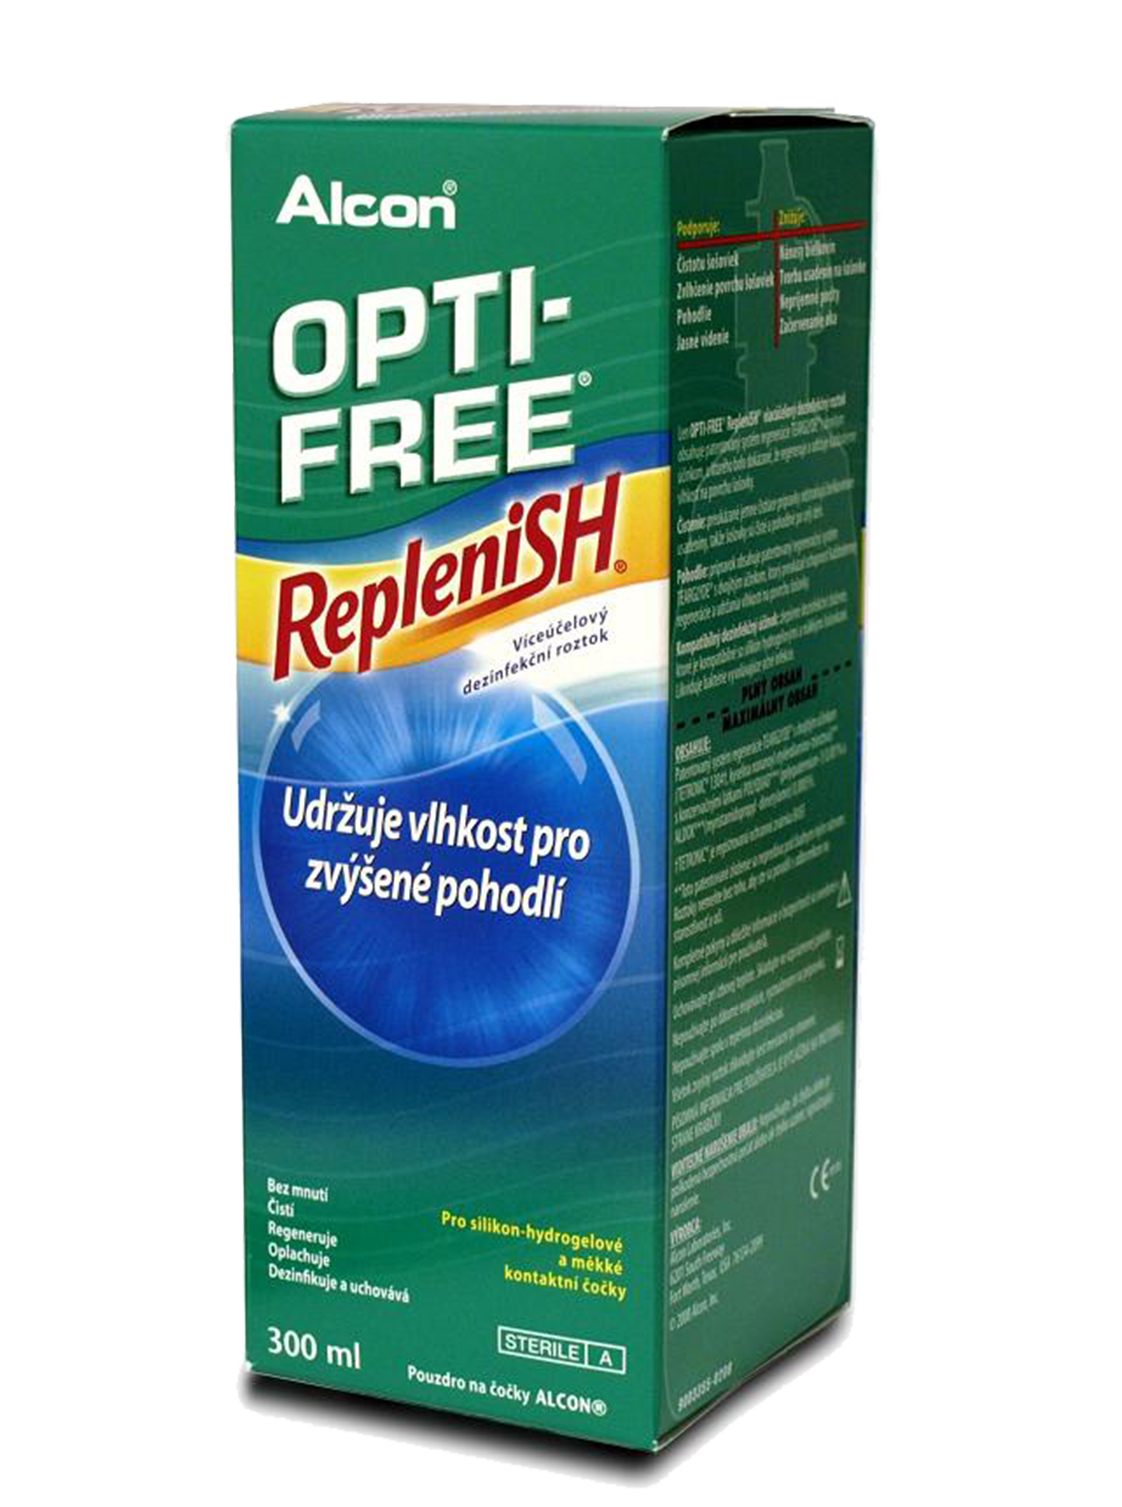 Alcon Opti-Free RepleniSH (300 ml) - s pouzdrem